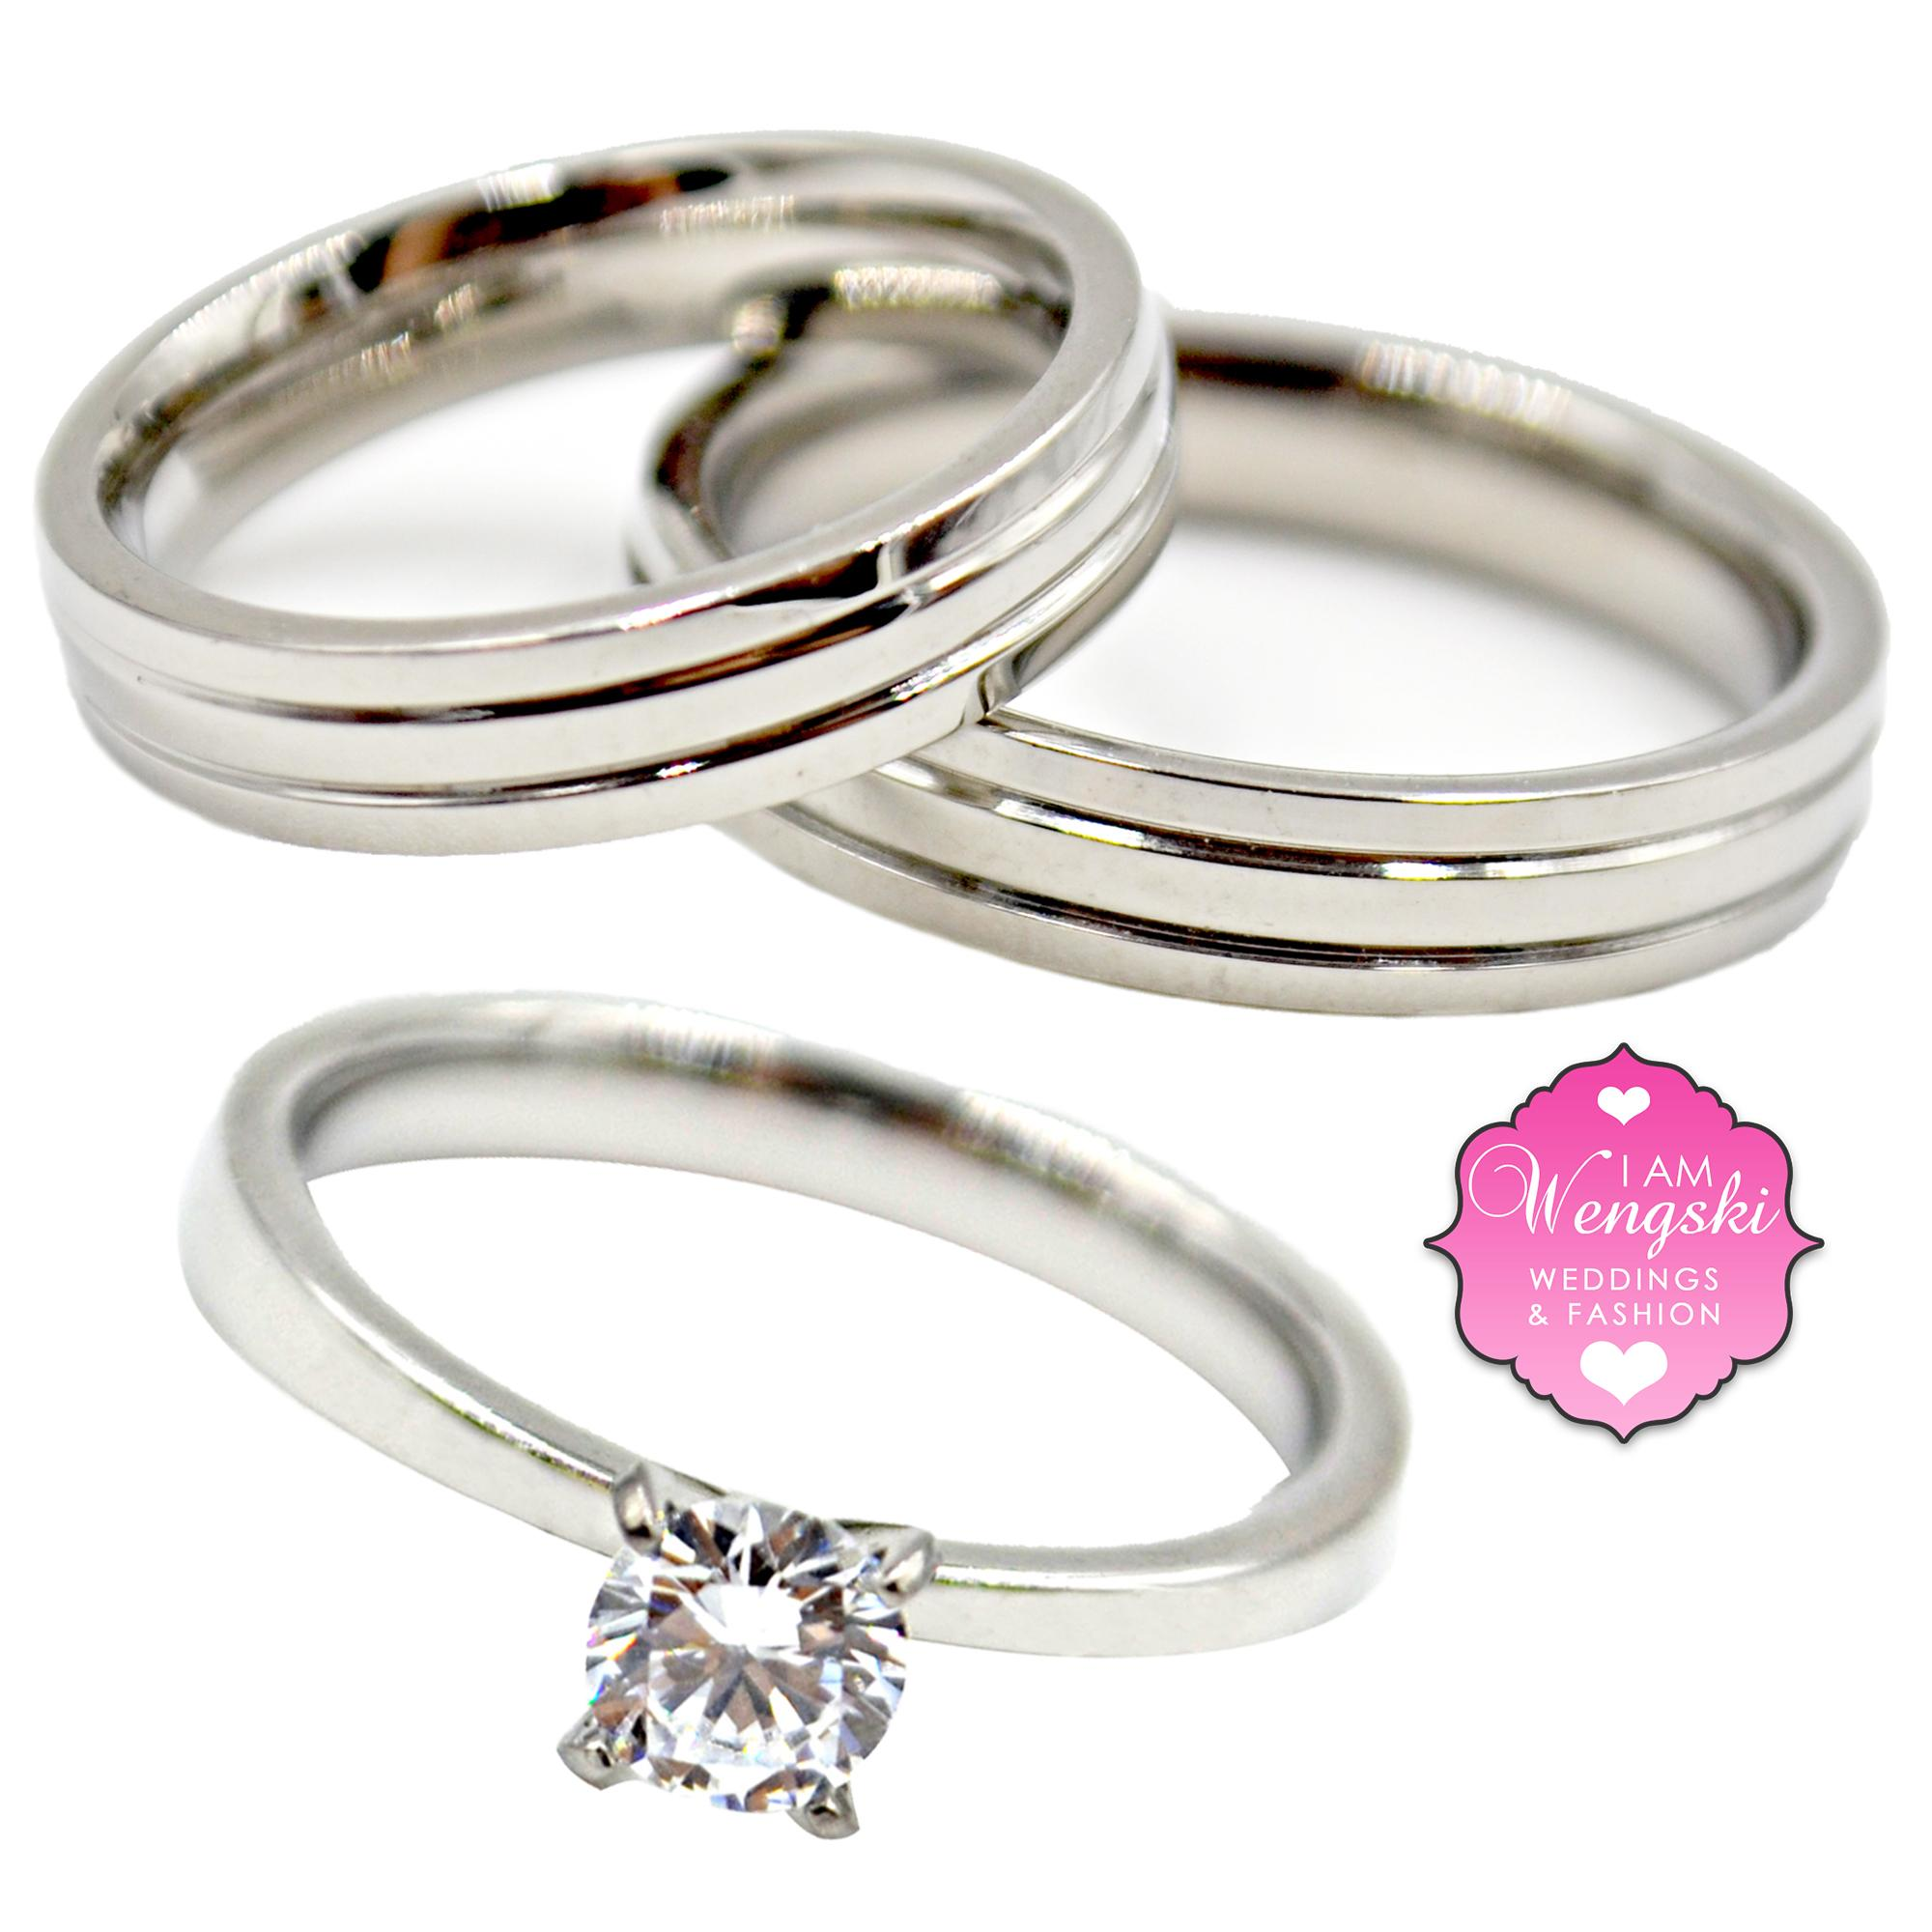 I Am Wengski Grego With Tiffany 3 Piece Wedding Engagement Ring Set (Silver)